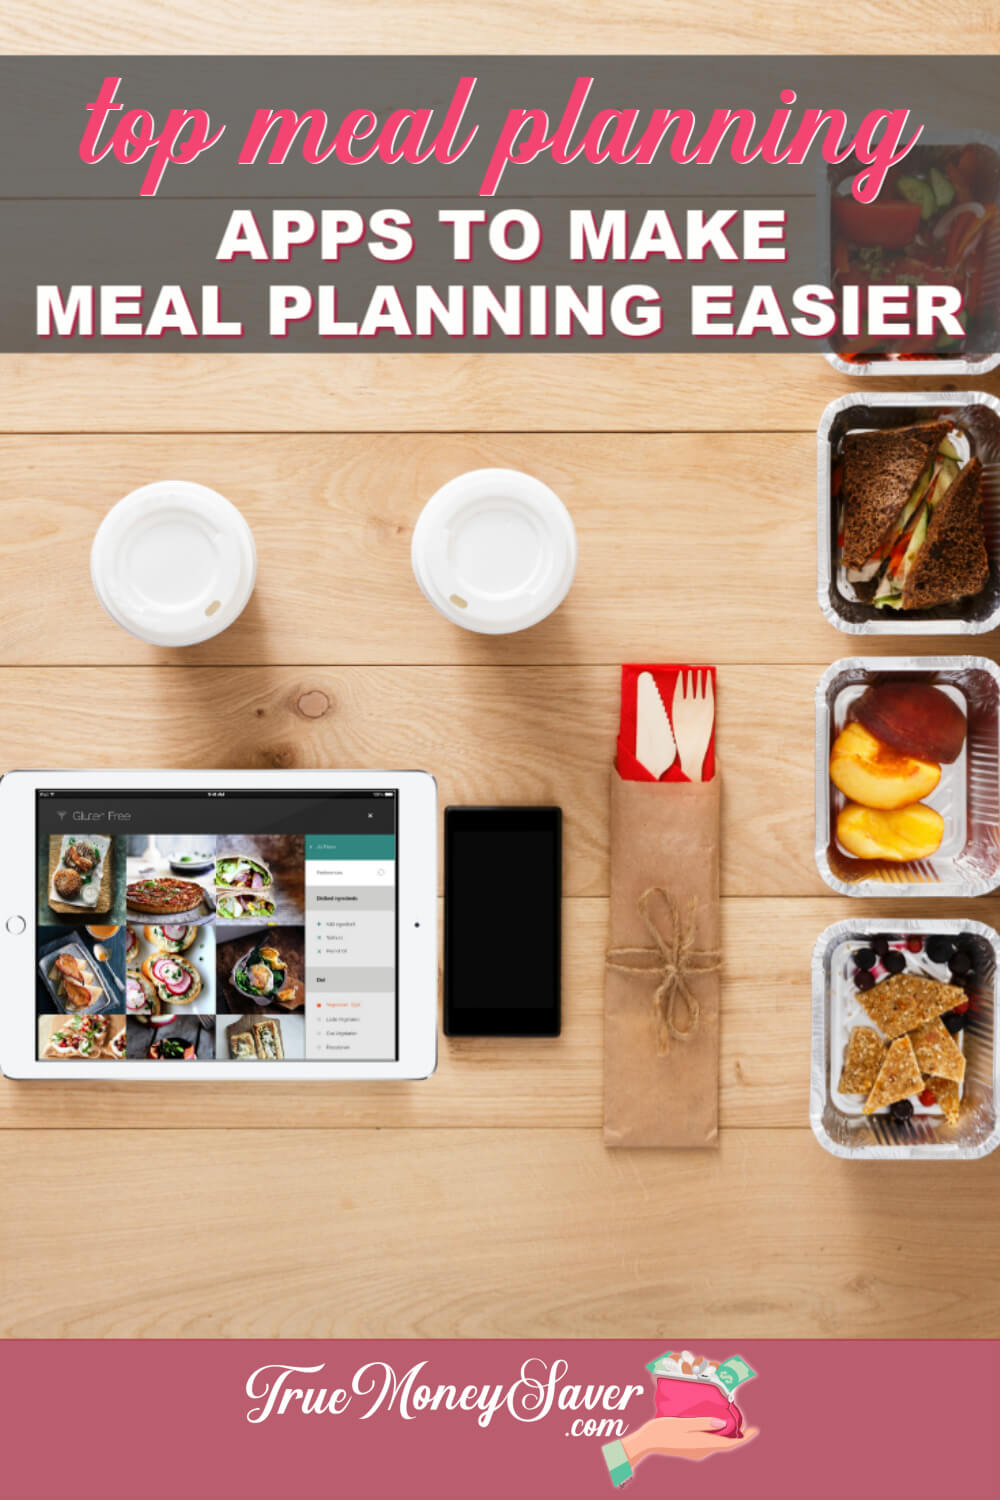 There are 7 FREE Meal Planning Apps that will make your meal planning easier! There are even meal planning apps for families! Try these simple meal planning apps out today!